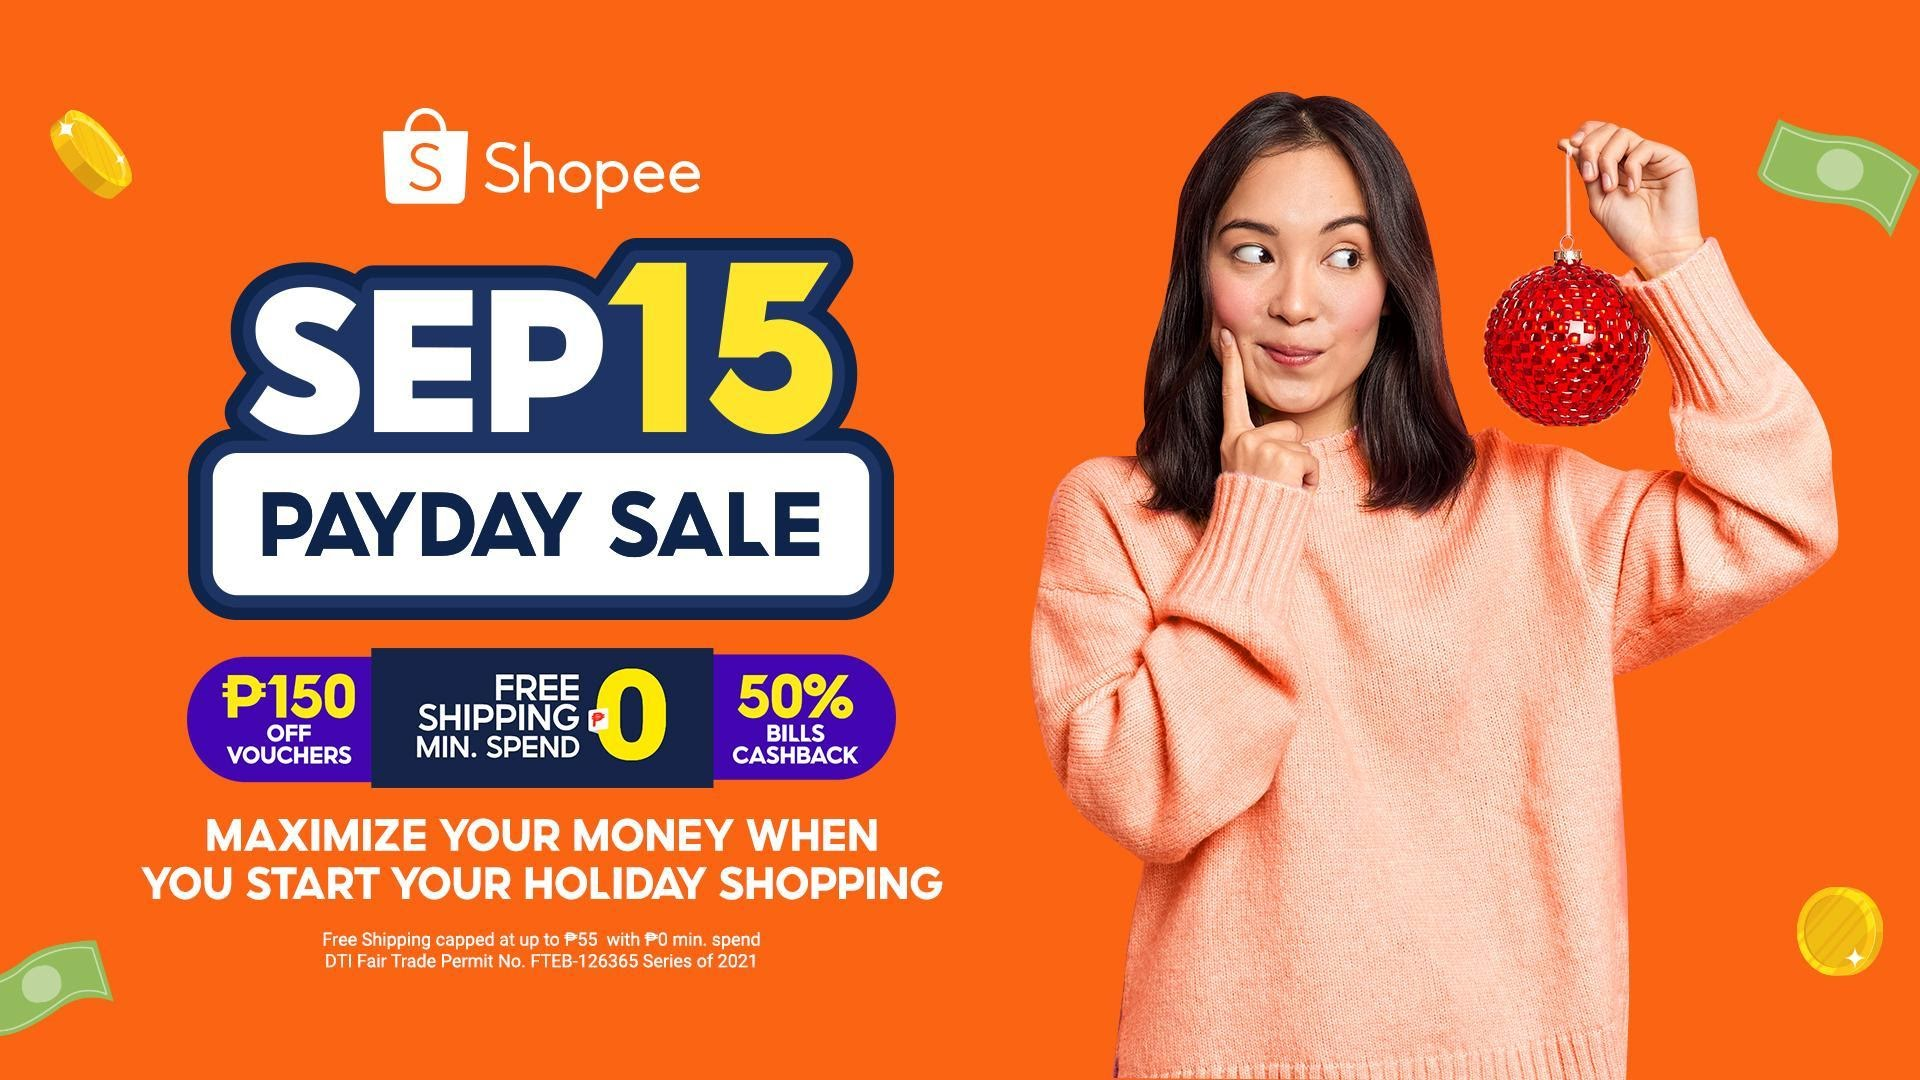 5 Easy ways to maximize your money when you start your holiday shopping at Shopee's 9.15 Payday Sale